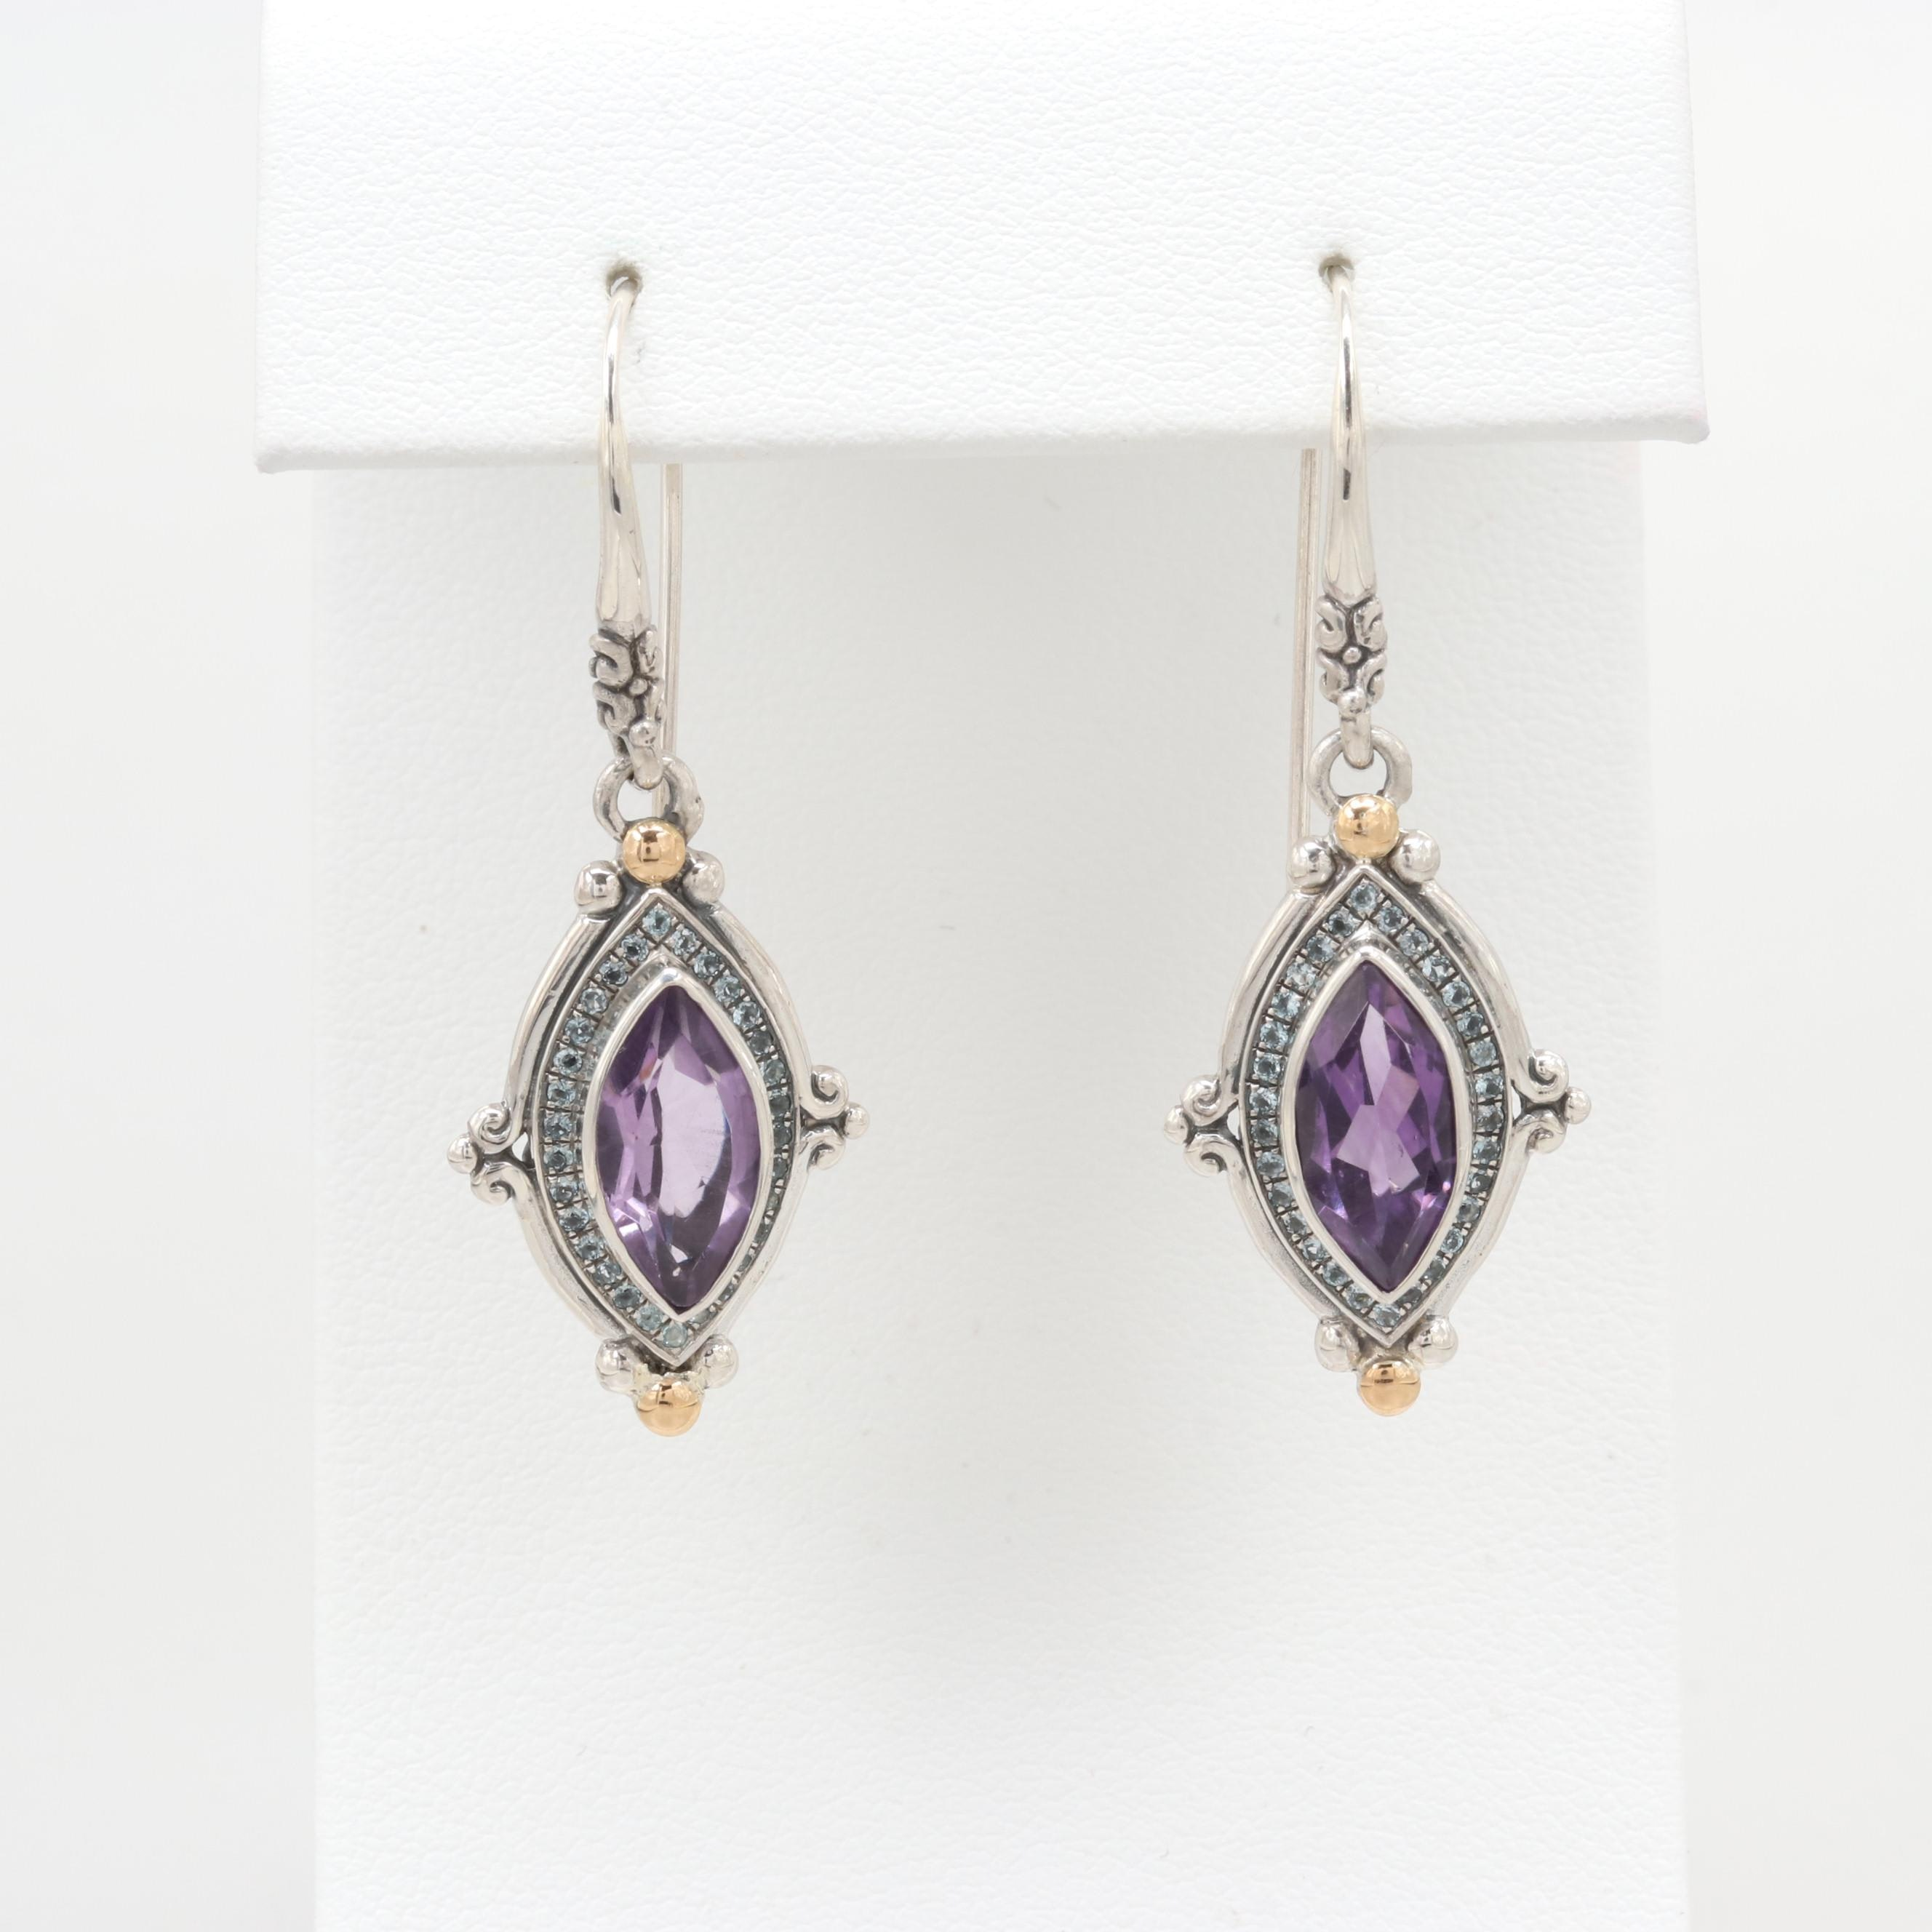 Robert Manse Sterling Amethyst and Topaz Earrings with 18K Gold Accents